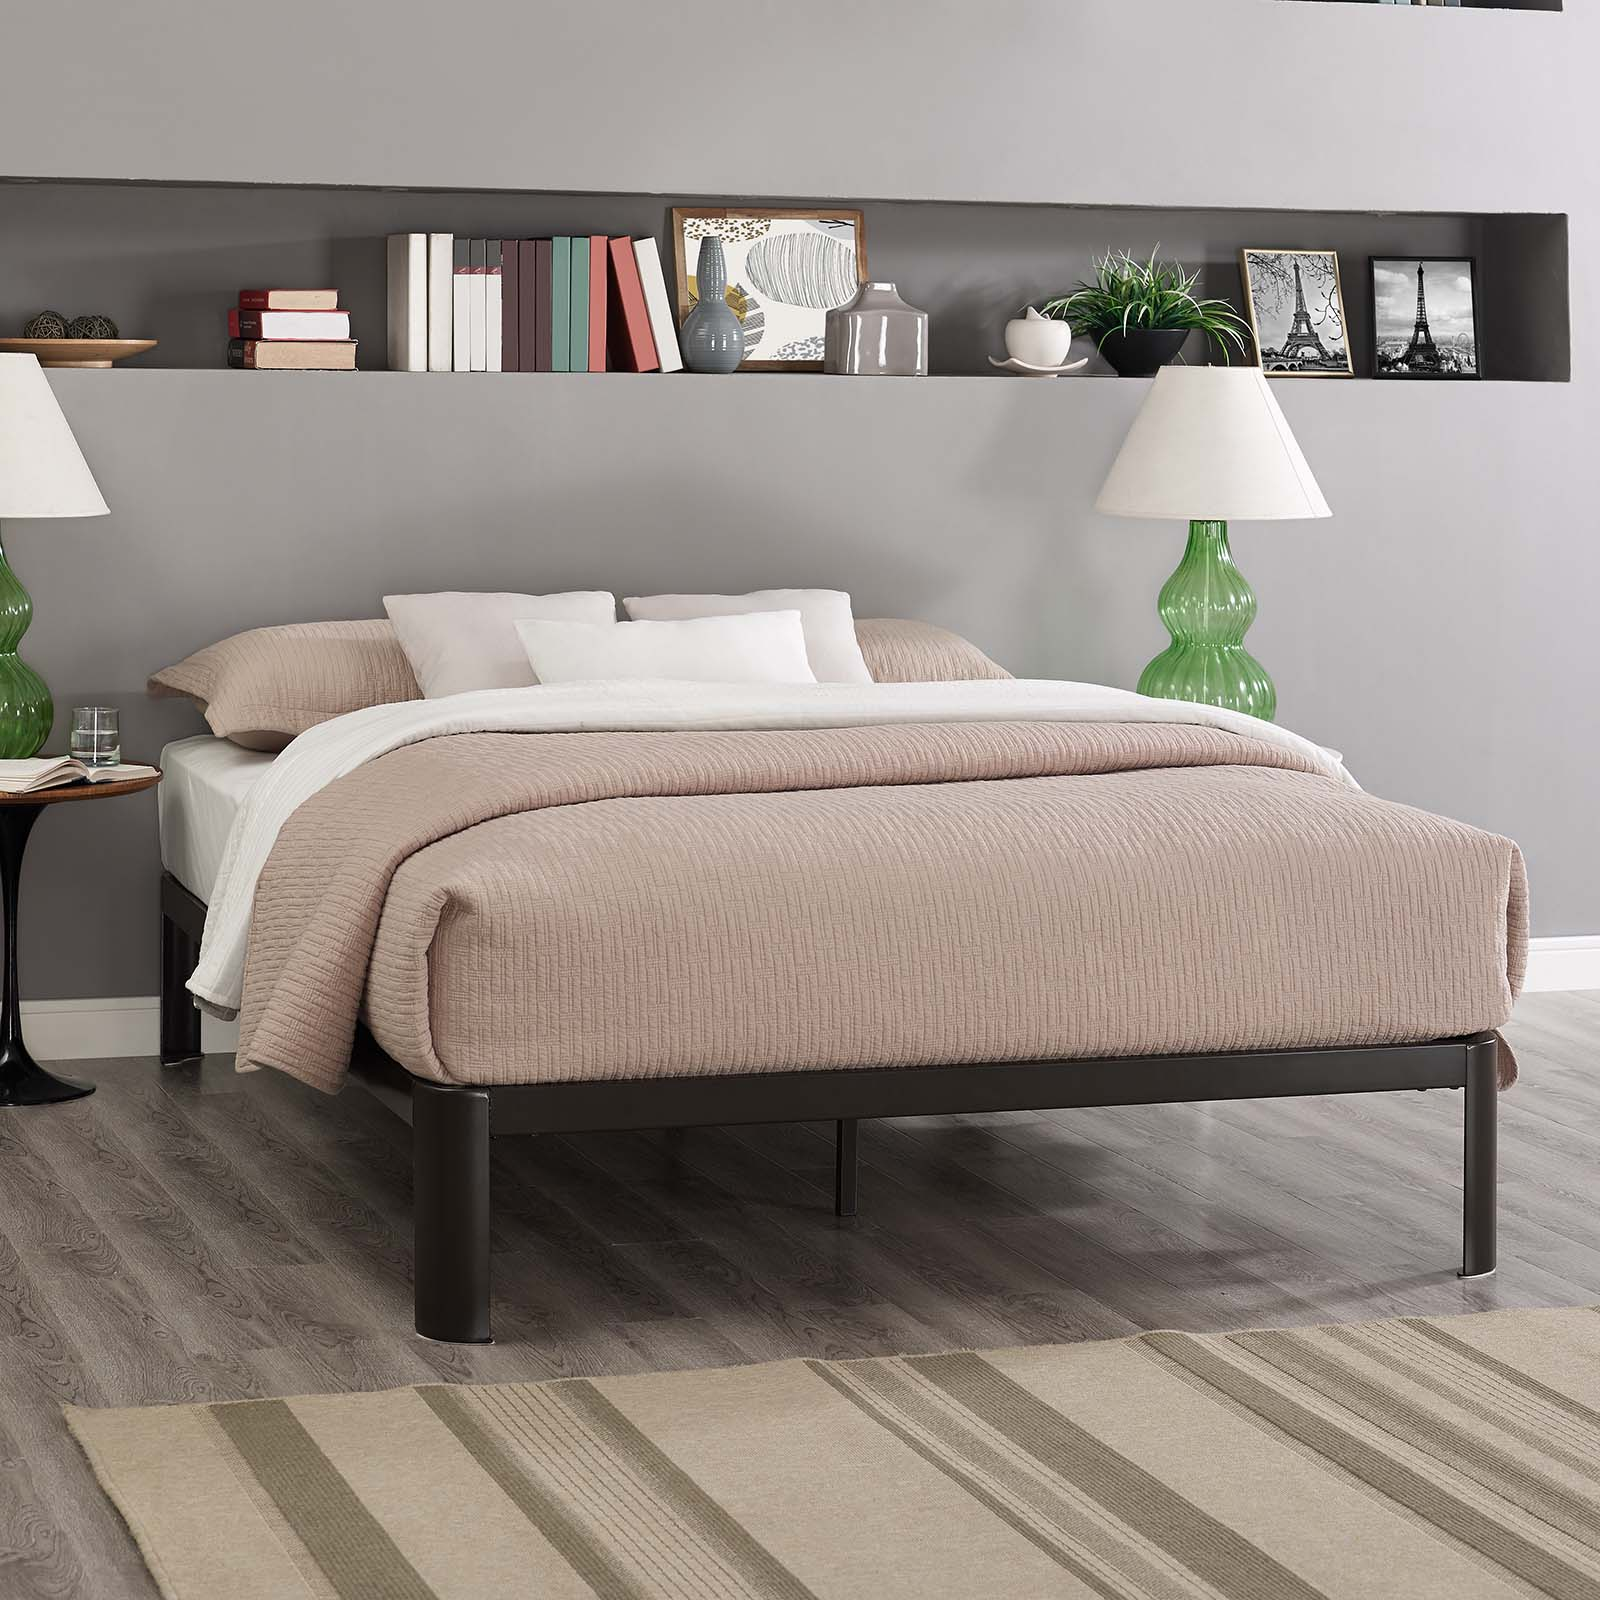 Modway Corinne Stainless Steel Bed Frame, Multiple Sizes and Colors